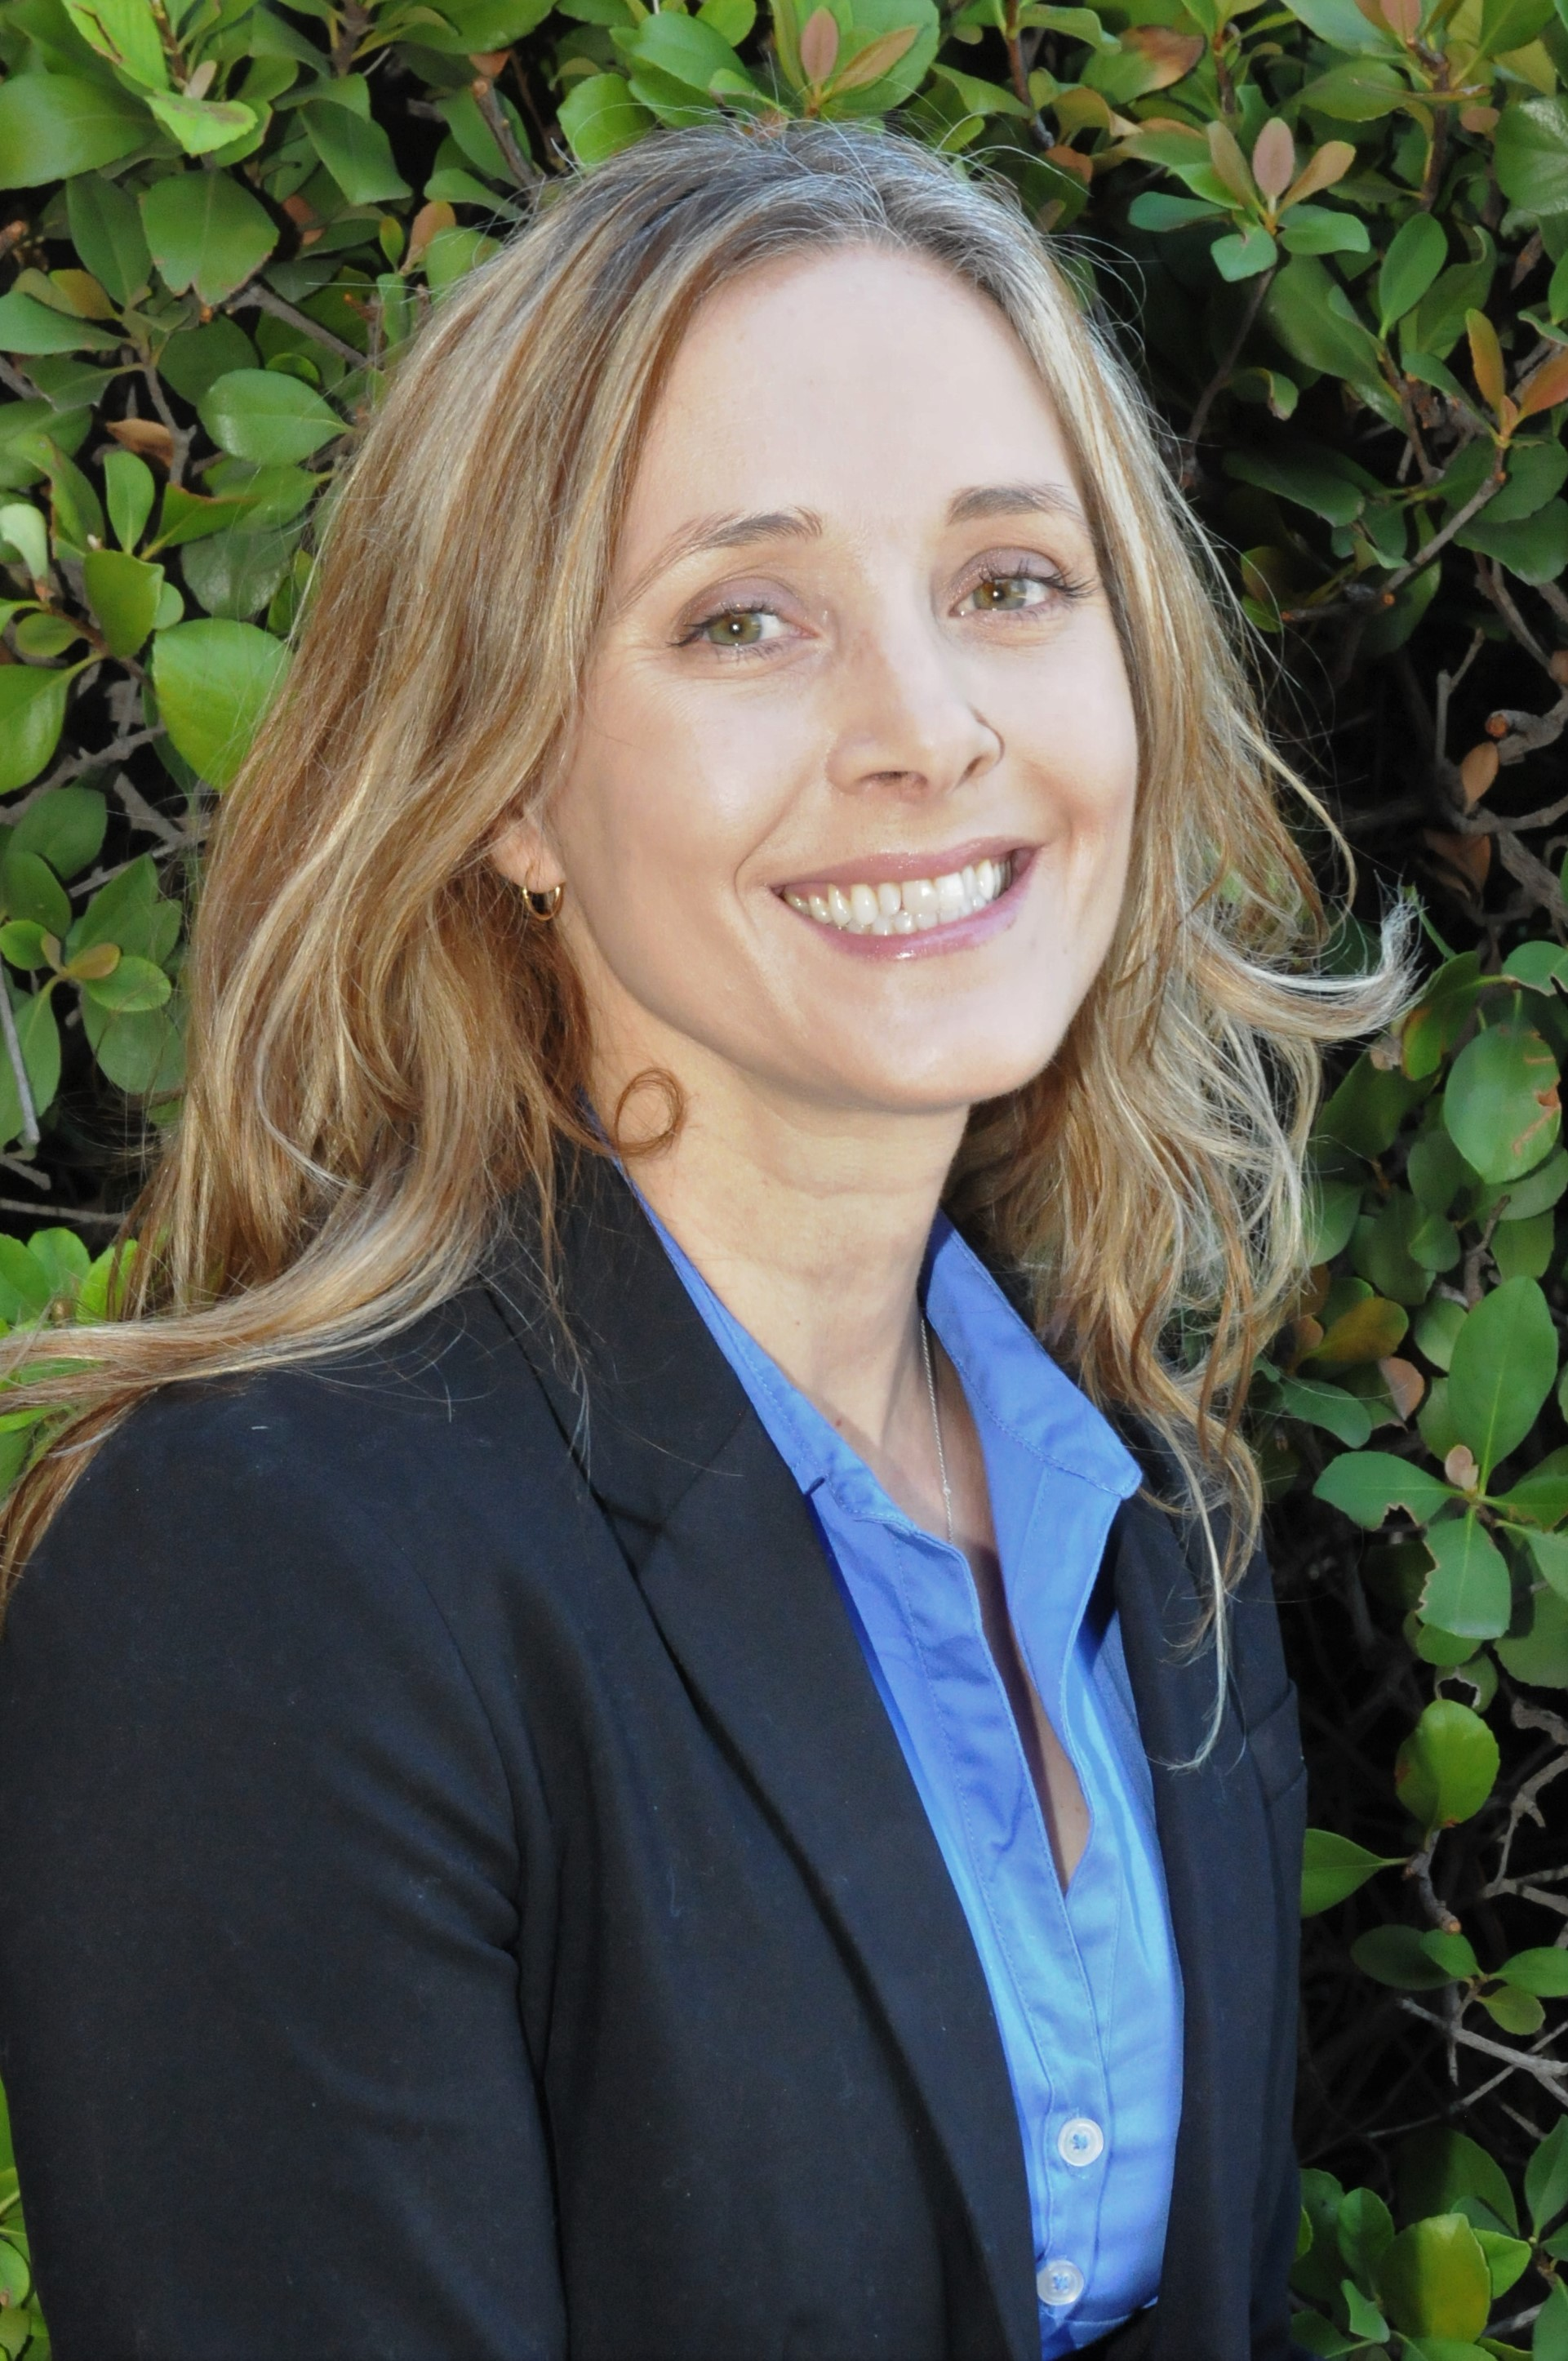 Rebecca Hartzell, headshot of honey blonde Caucasian woman in front of green foliage in a blue blazer